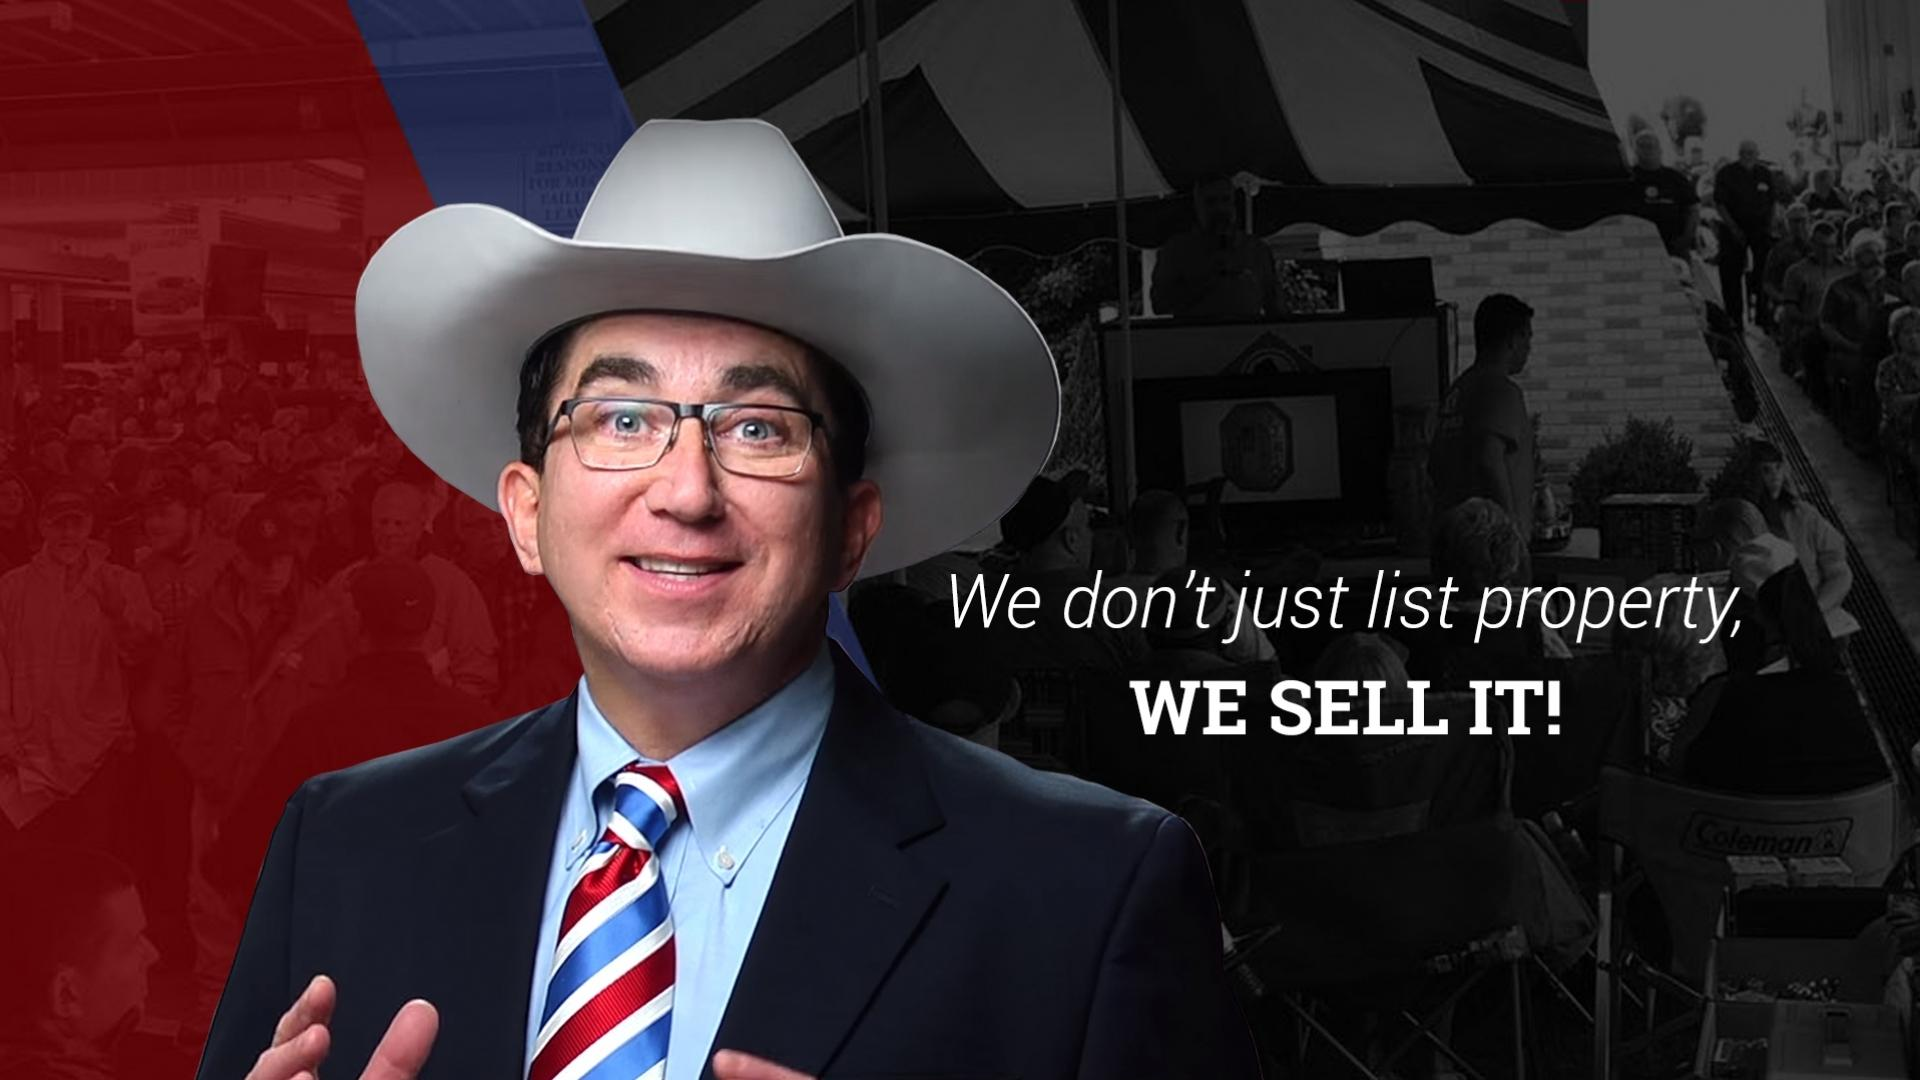 We don't just list property...